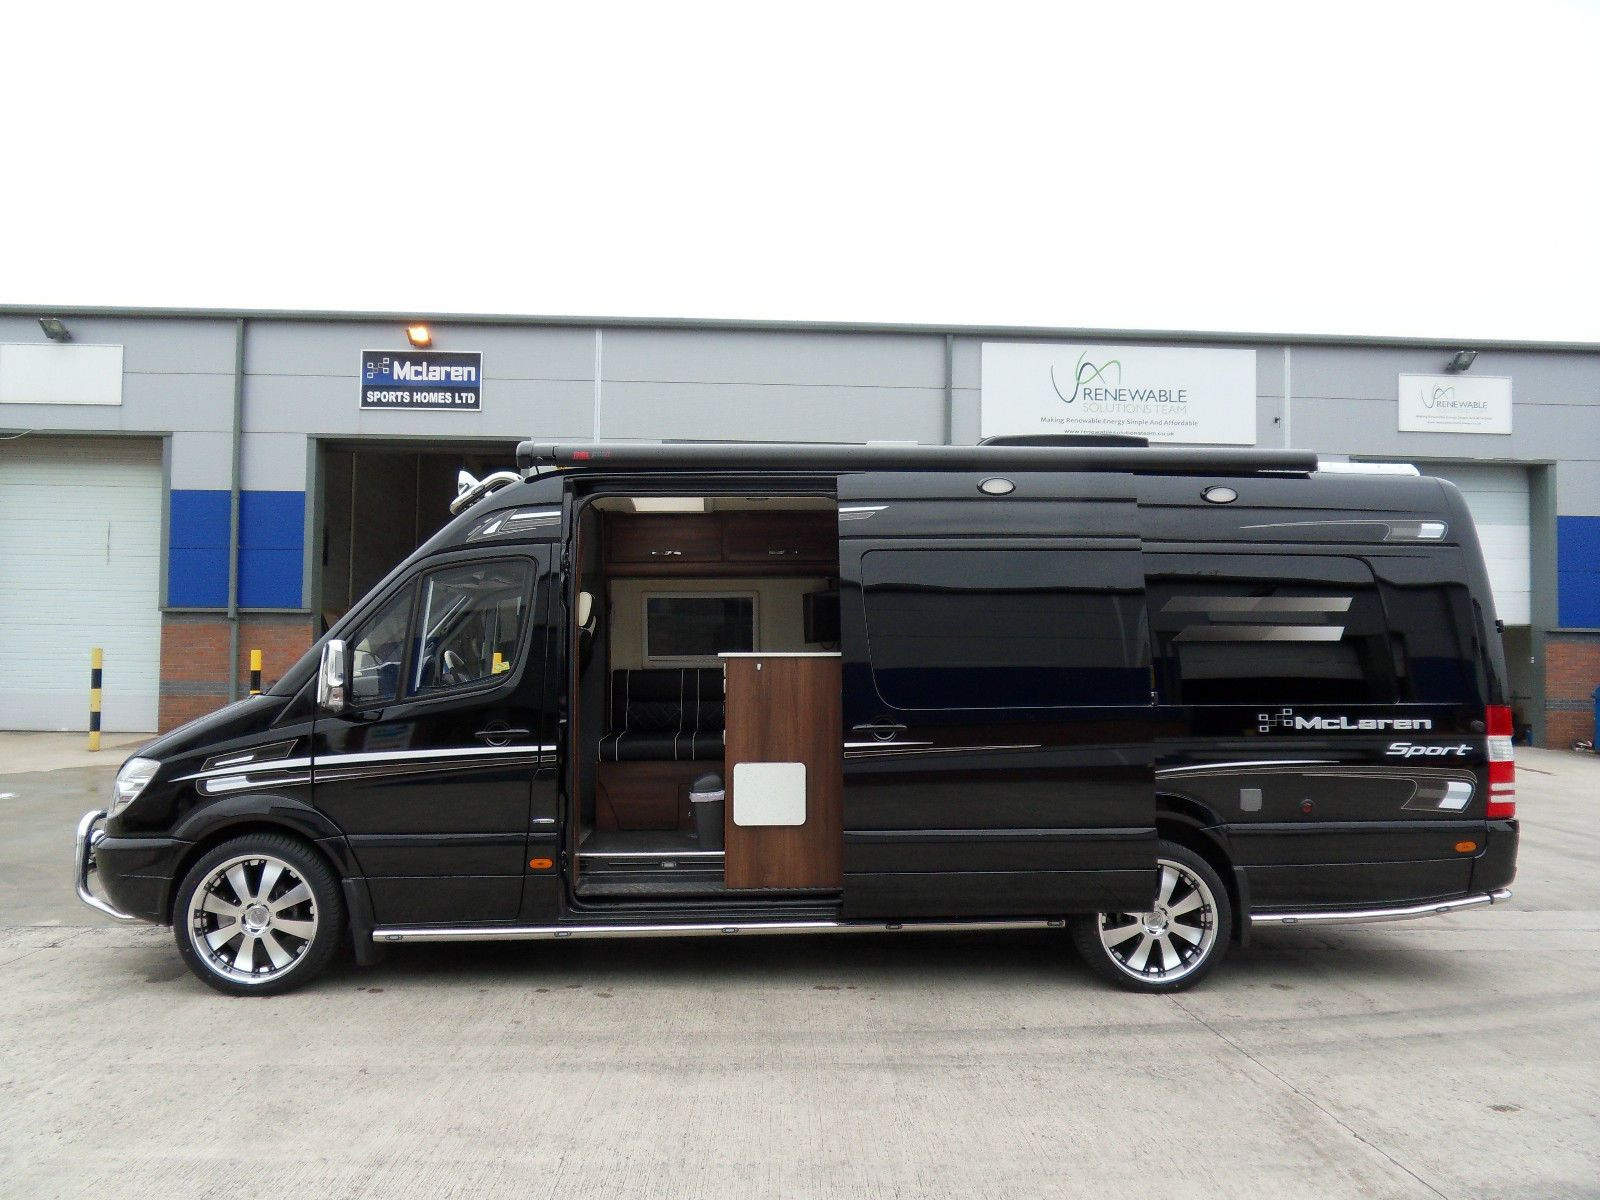 Mclaren sporthome race van mercedes sprinter vw crafter for Mercedes benz sprinter conversion